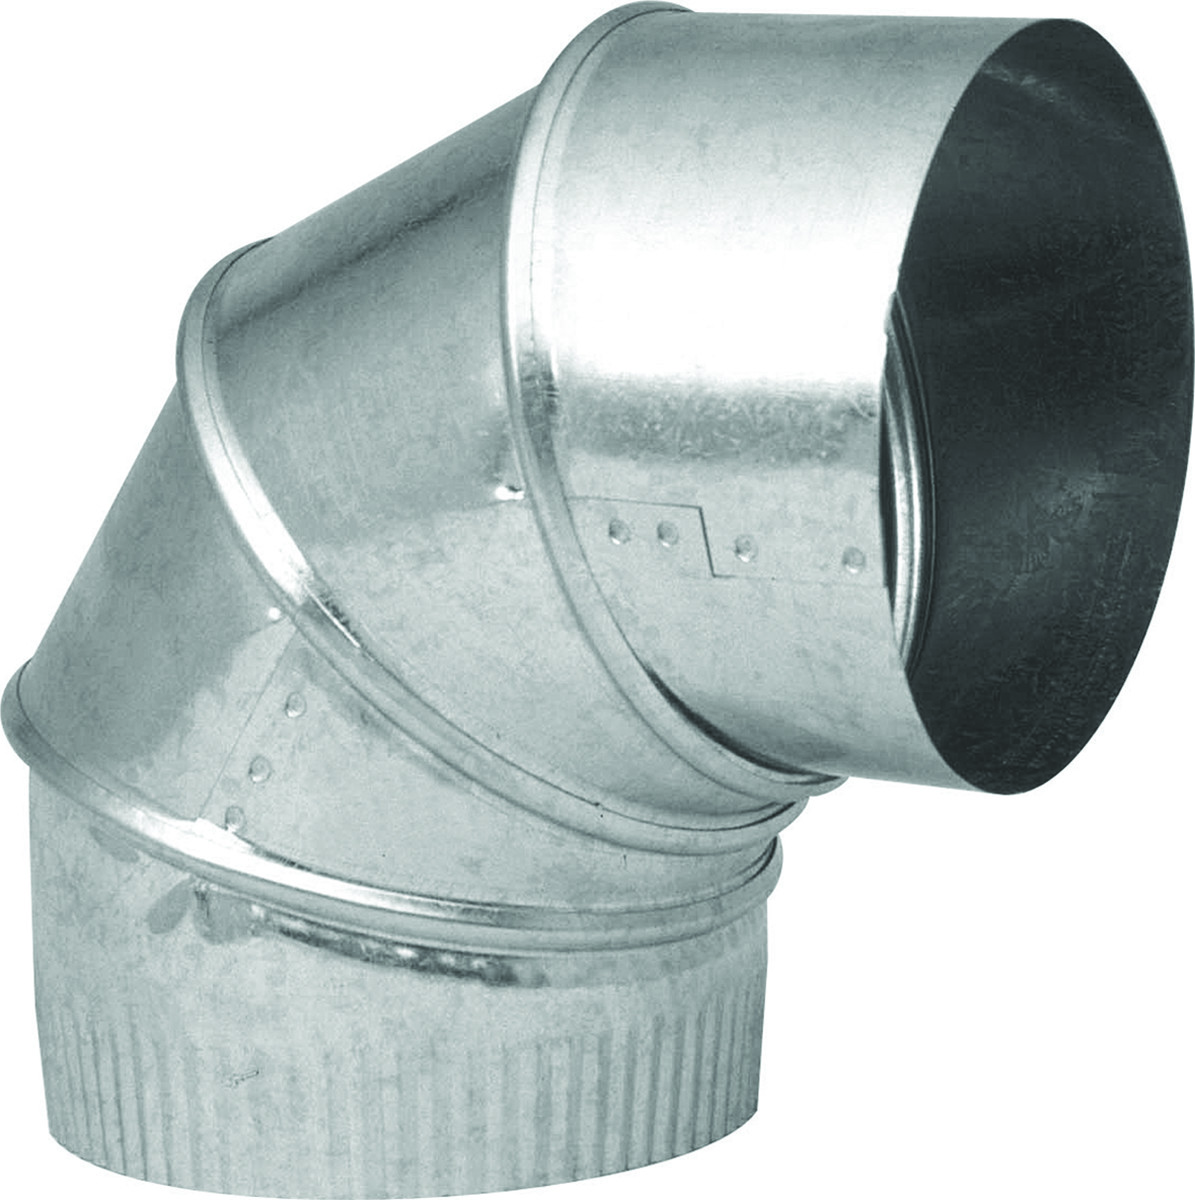 Imperial Manufacturing Gv0308 10 Inch Galvanized Adjustable Elbows 063467110088 1